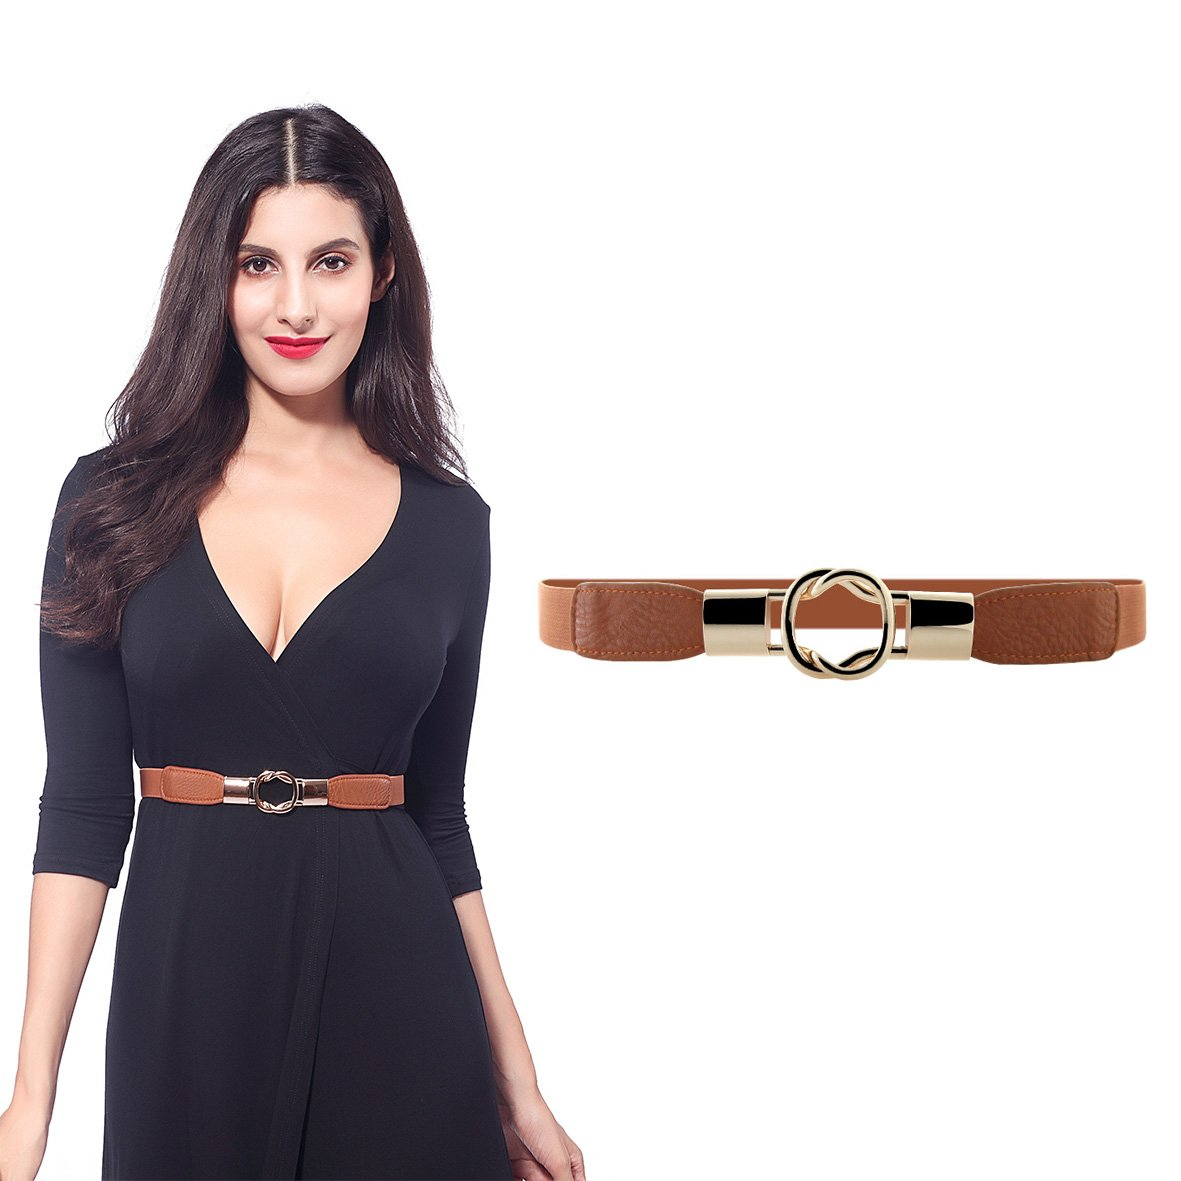 Women Metal Fashion Skinny Leather Belt Gold Elastic Buckle belt solid color